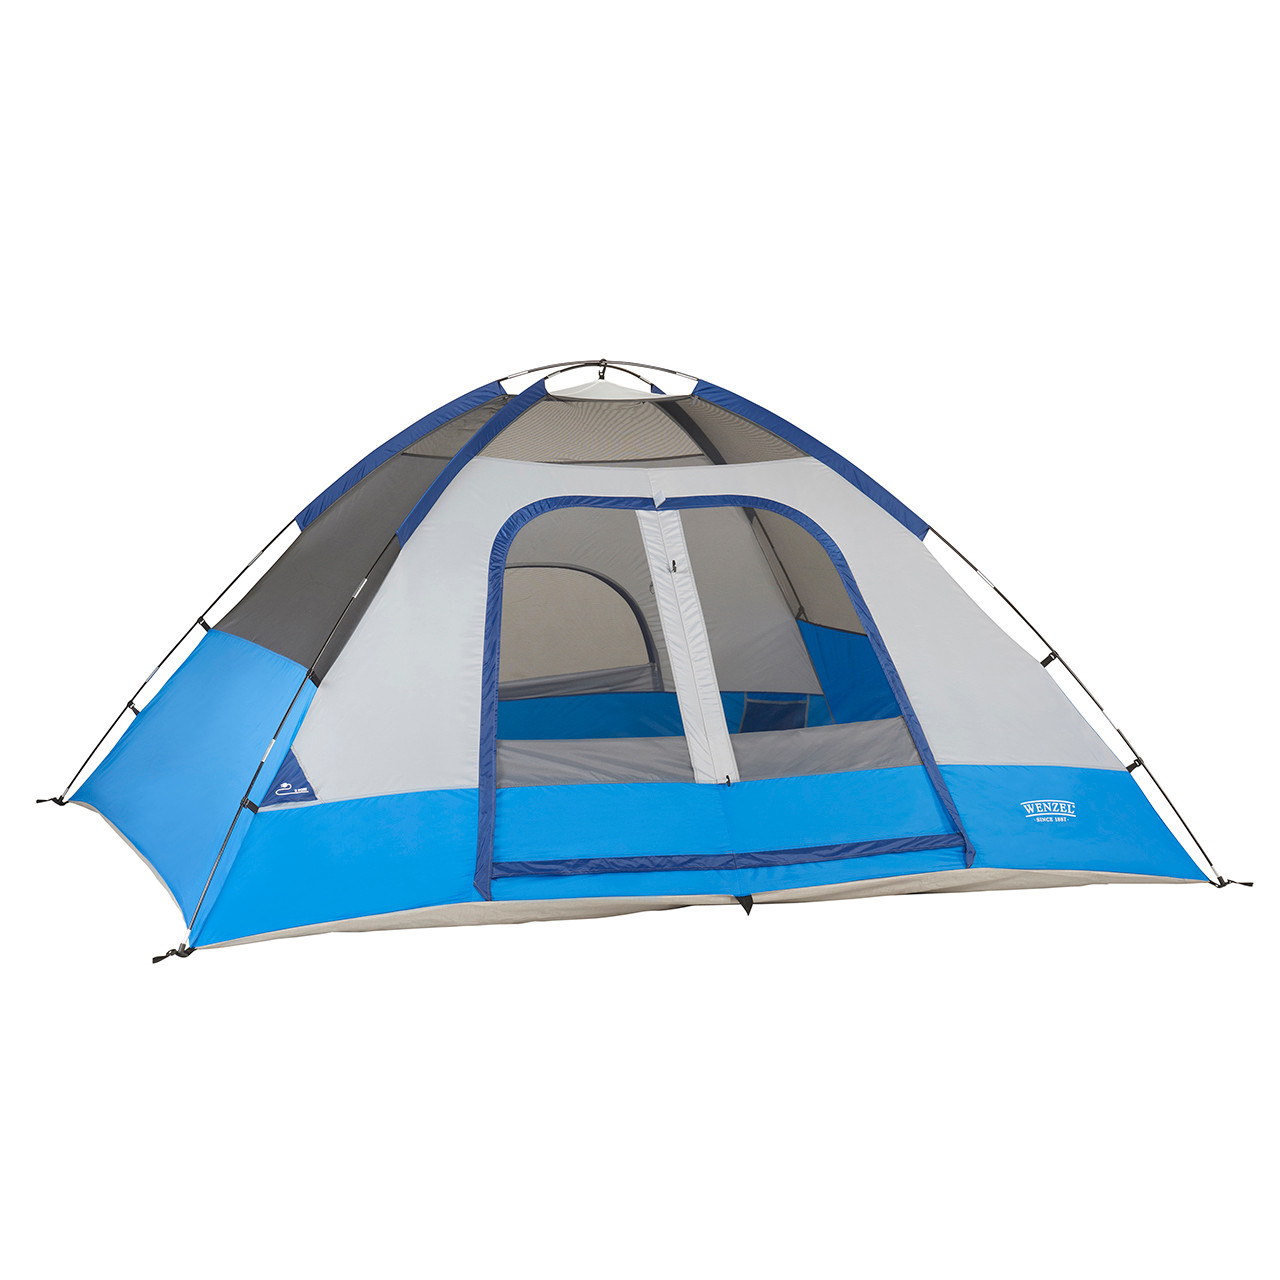 Wenzel Pine Ridge 5 tent, blue and tan, setup with the rain fly off and the main and back screen windows rolled open